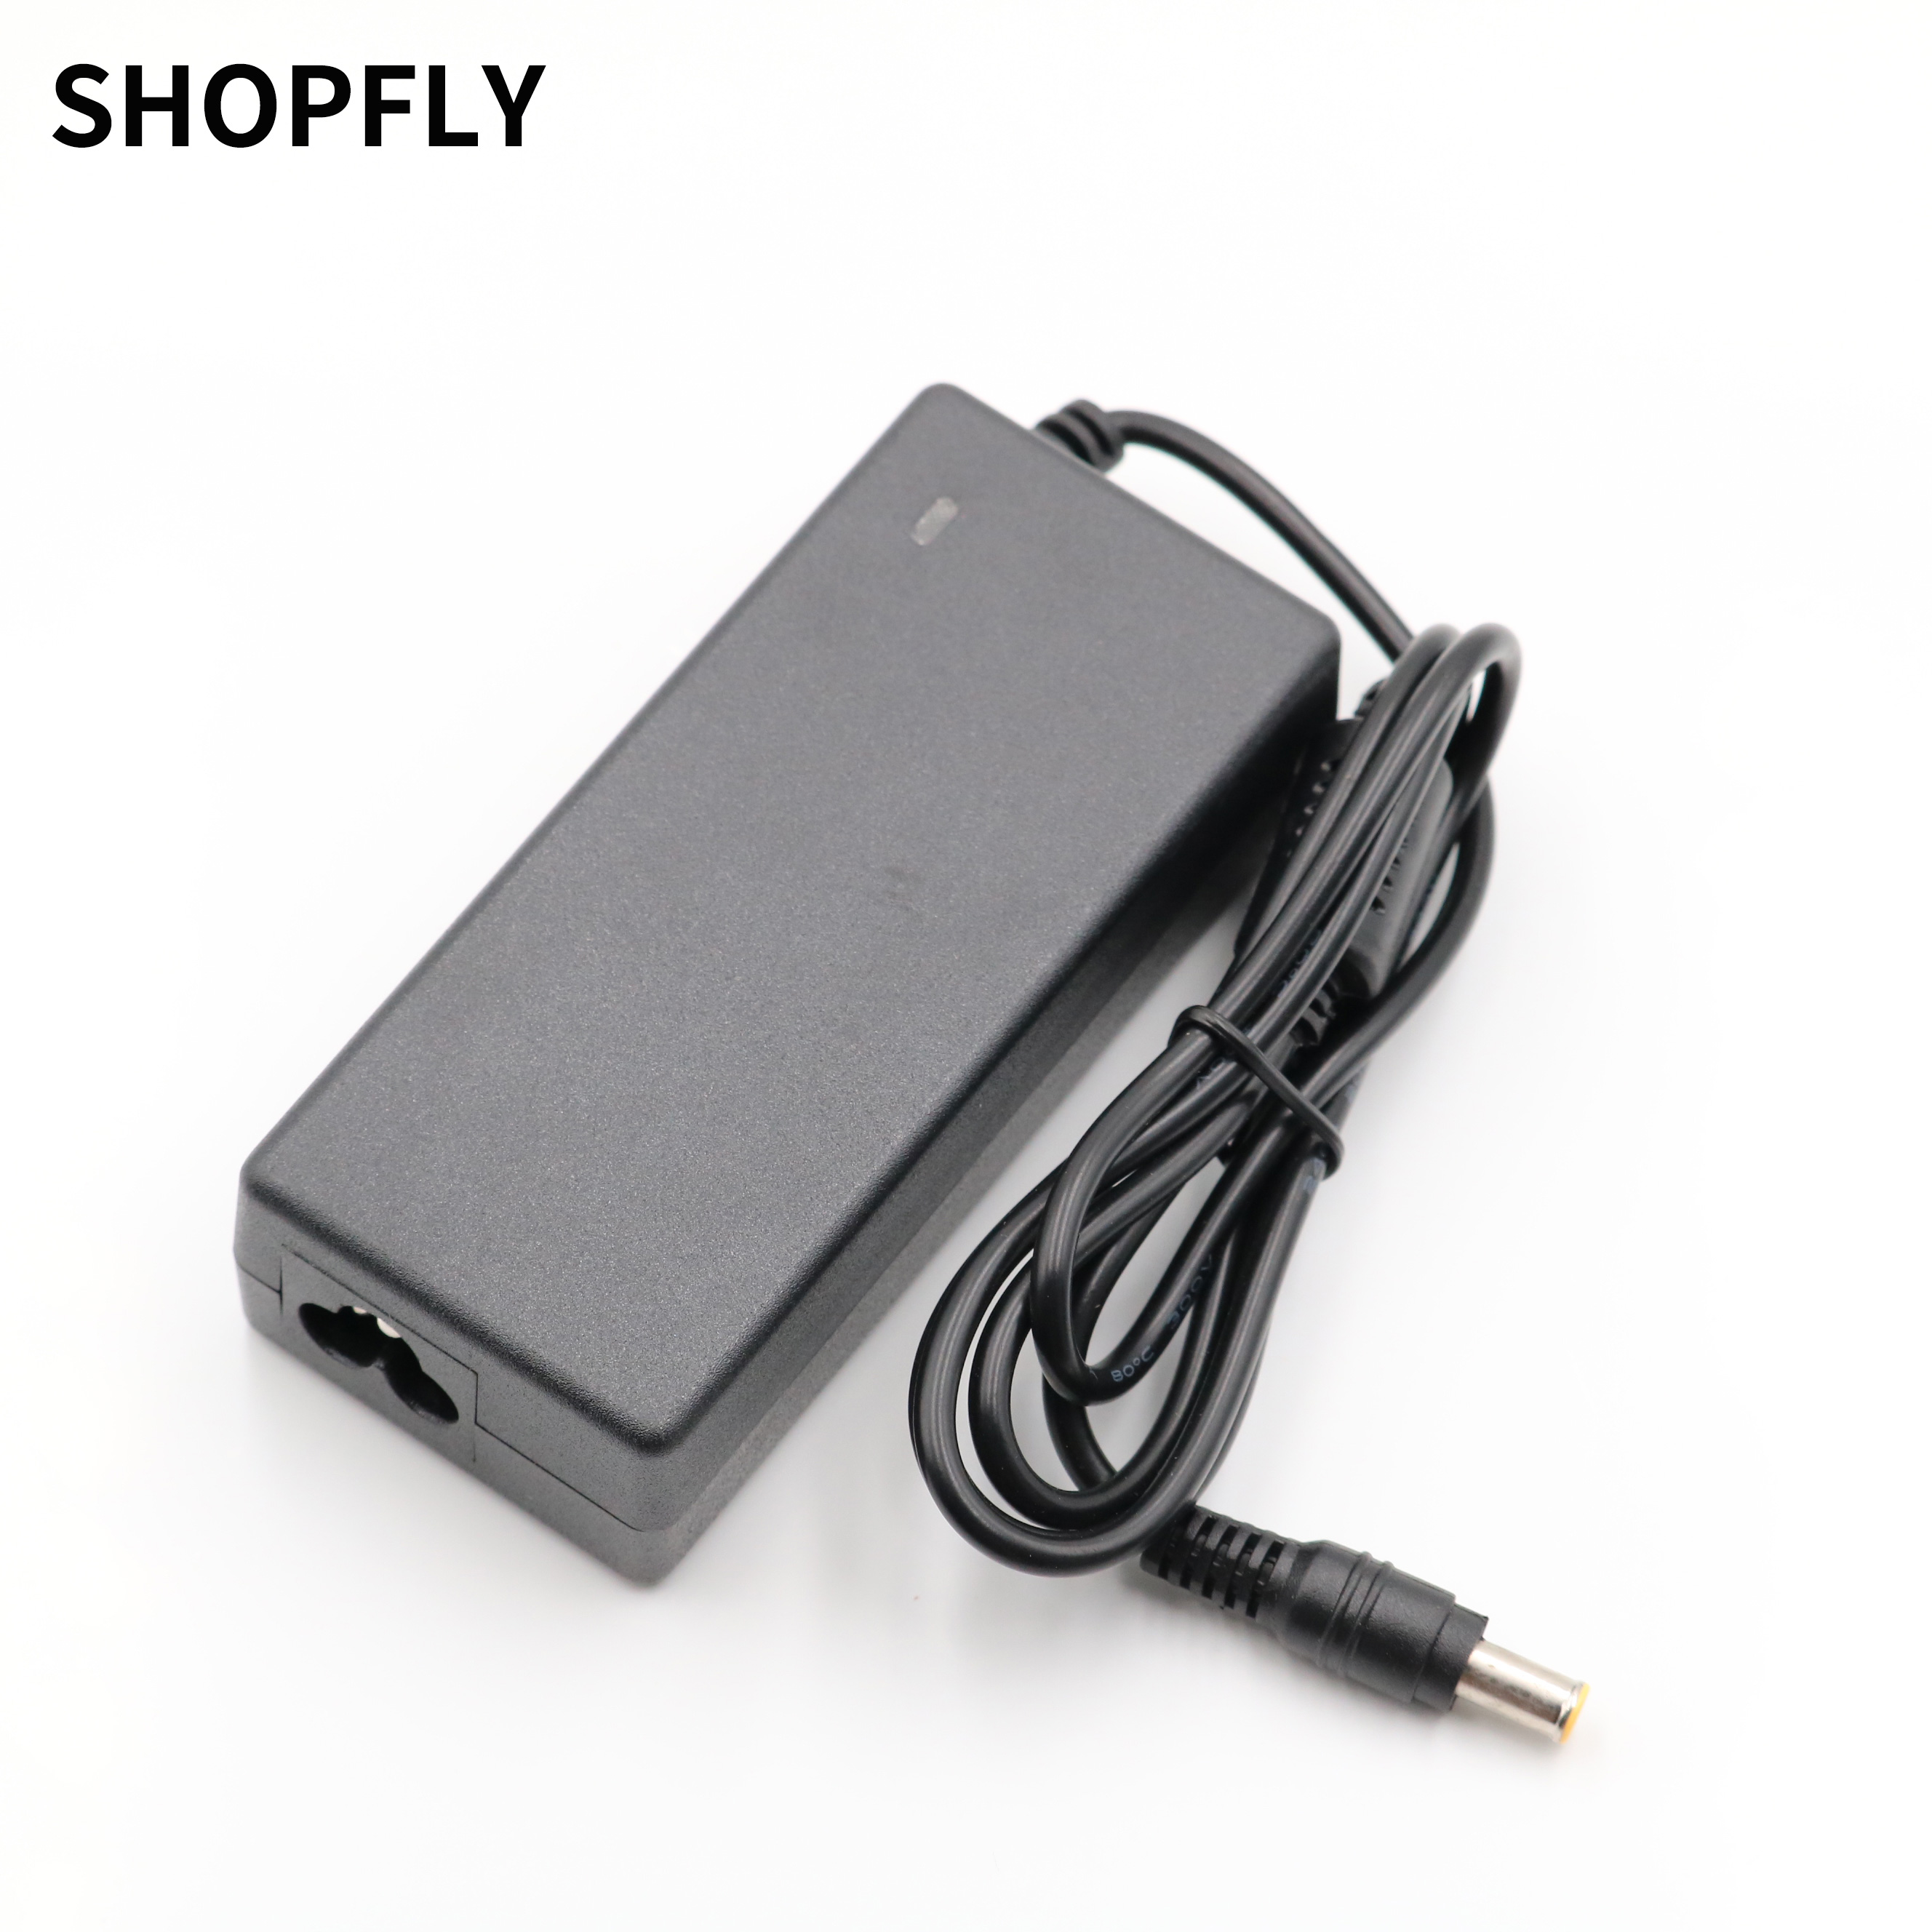 16V AC Power Adaptor for Canon IP100 IP110 iP90 i80 i70 inkjet portable printer